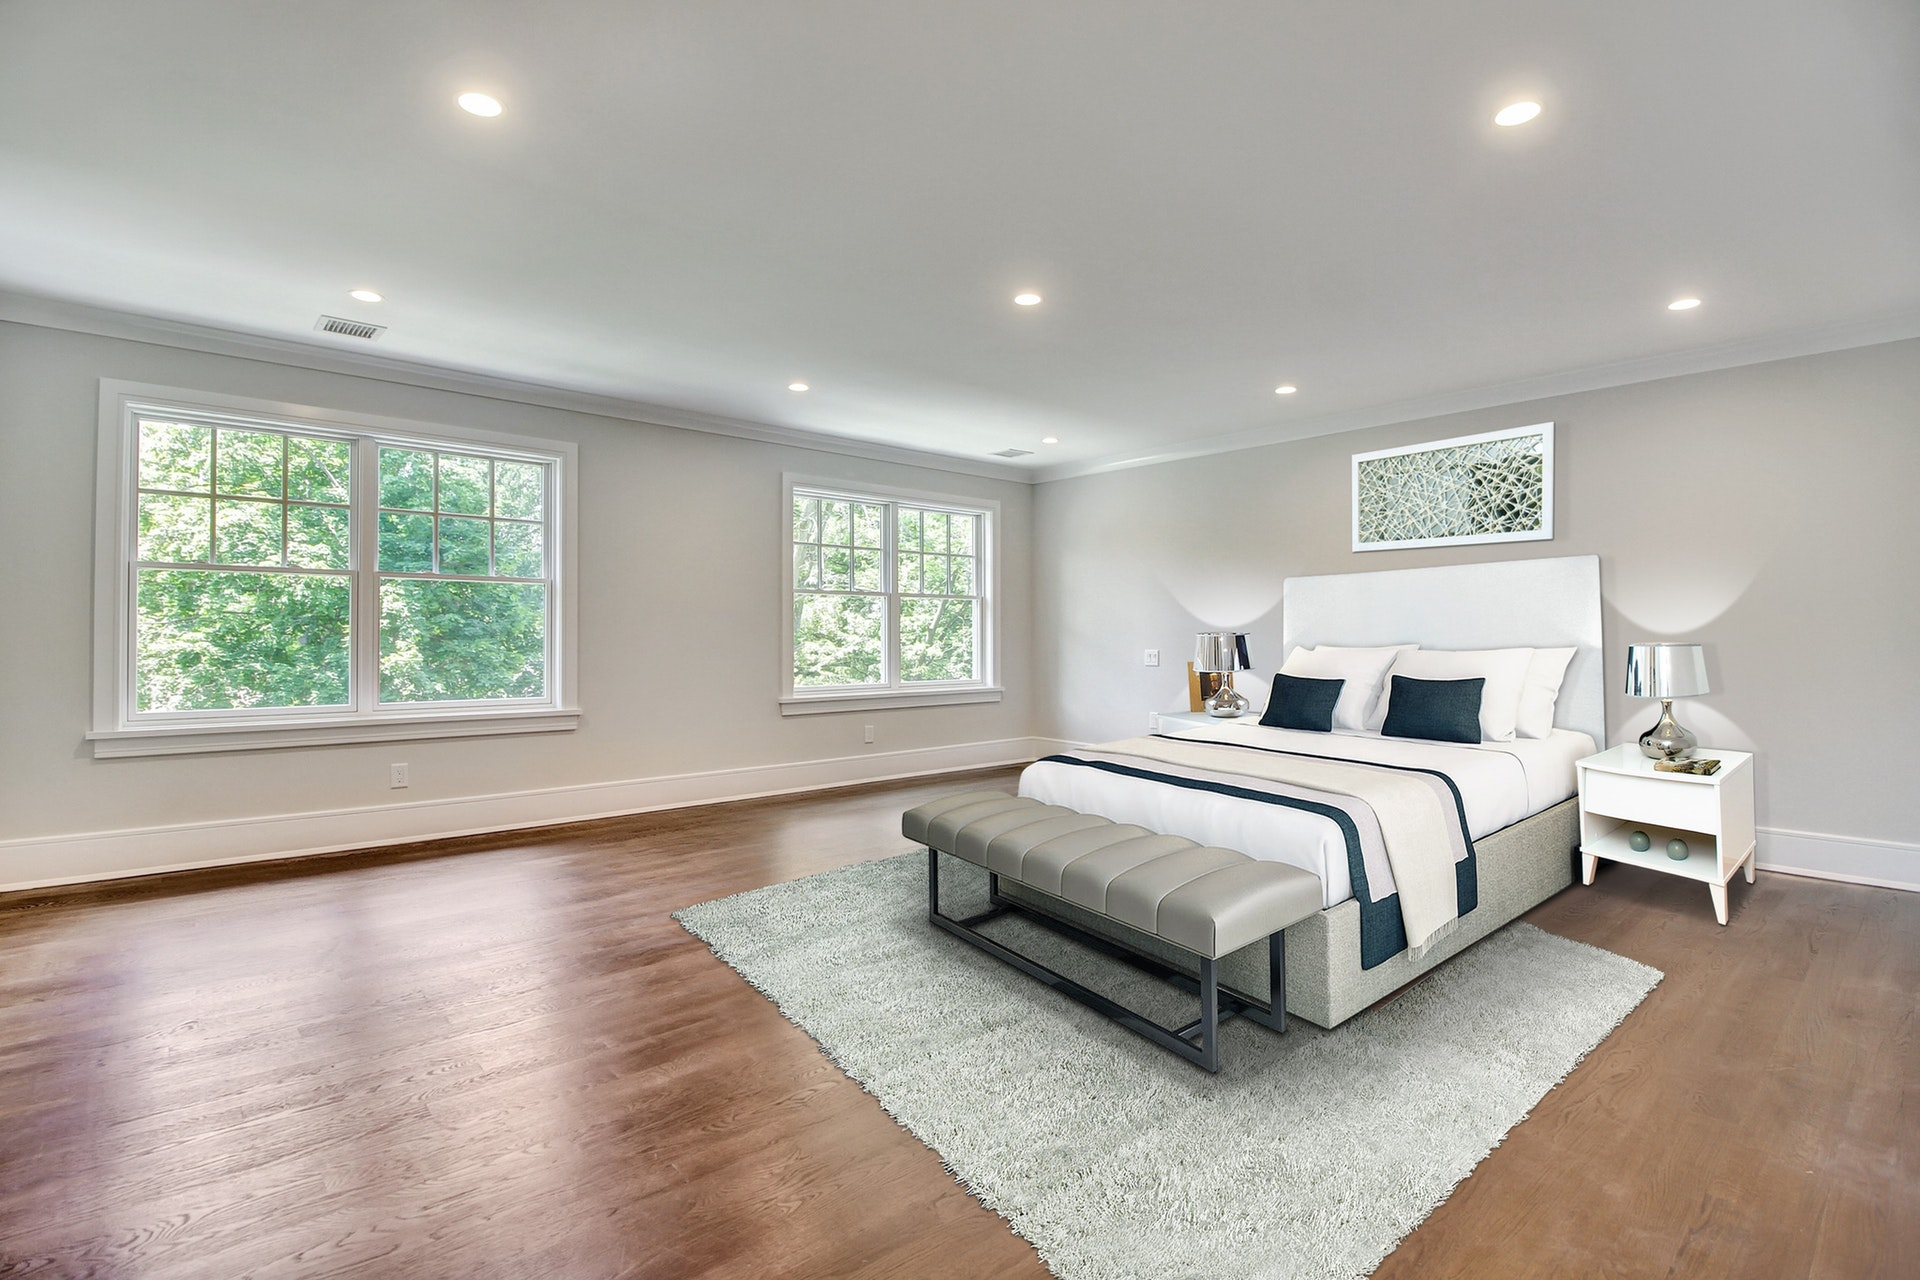 7 Saratoga Way Master Suite